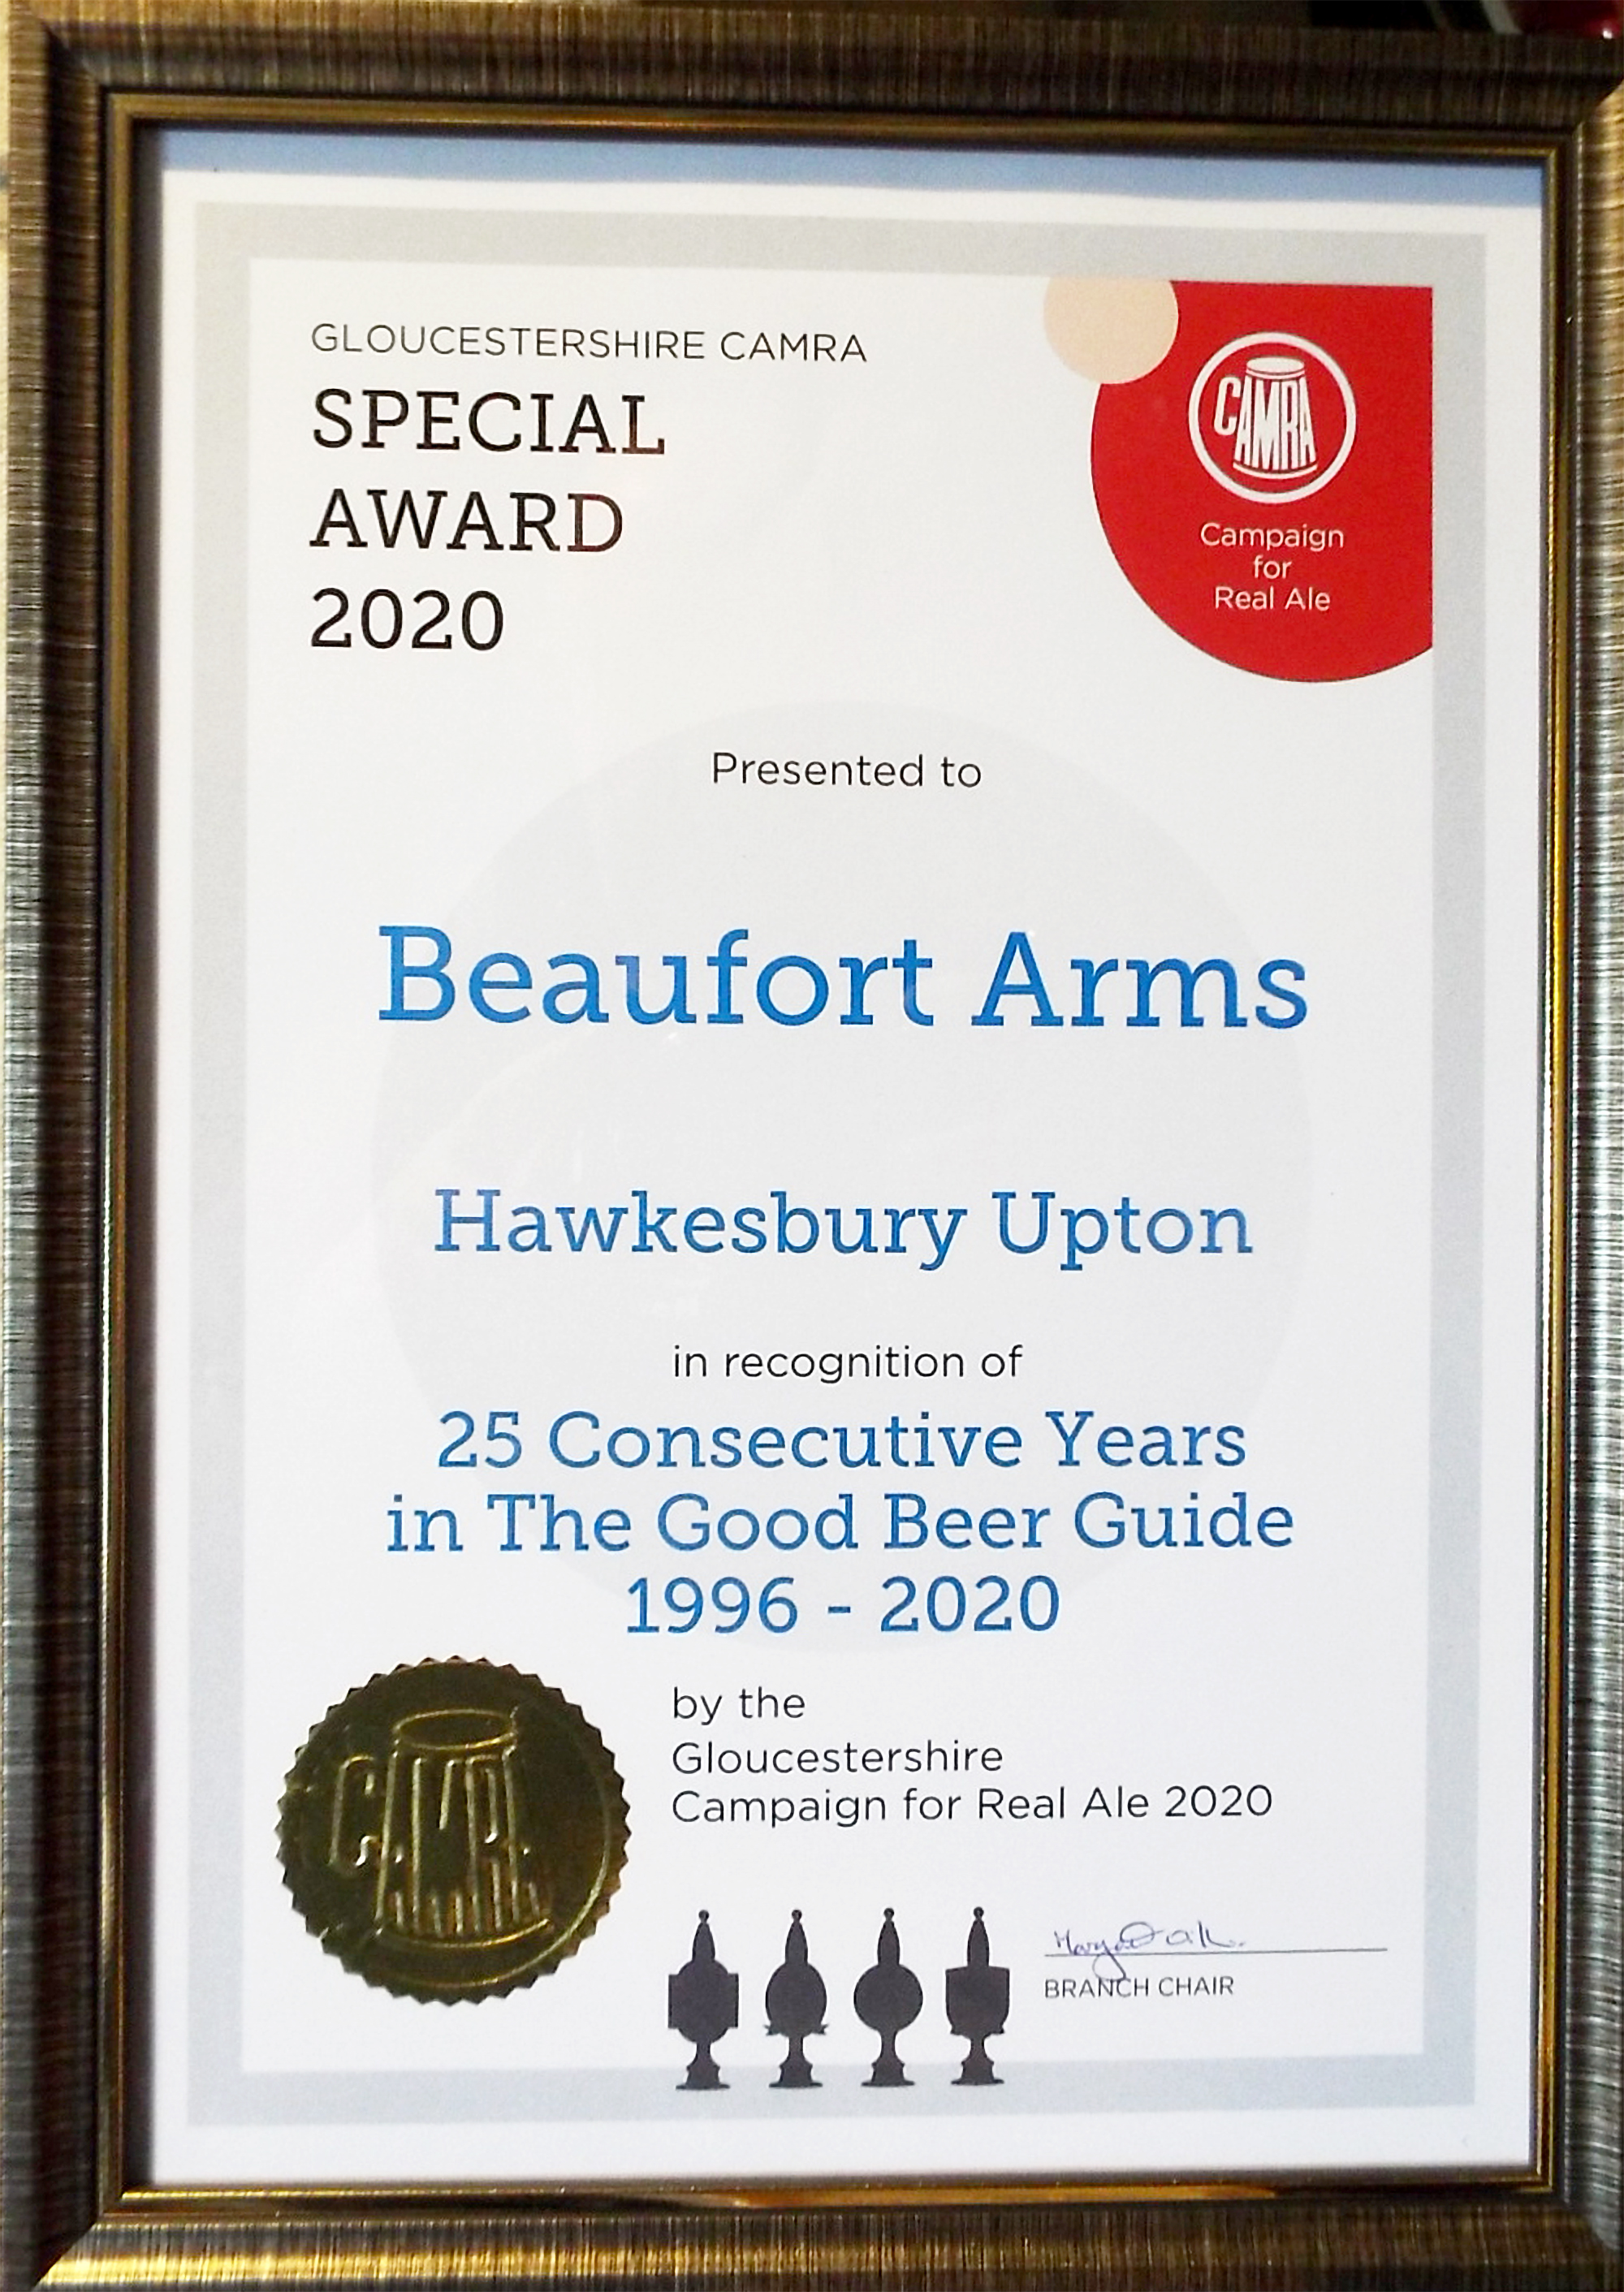 Beaufort Arms - Certificate in recognition of 25 consecutive years in the Good Beer Guide